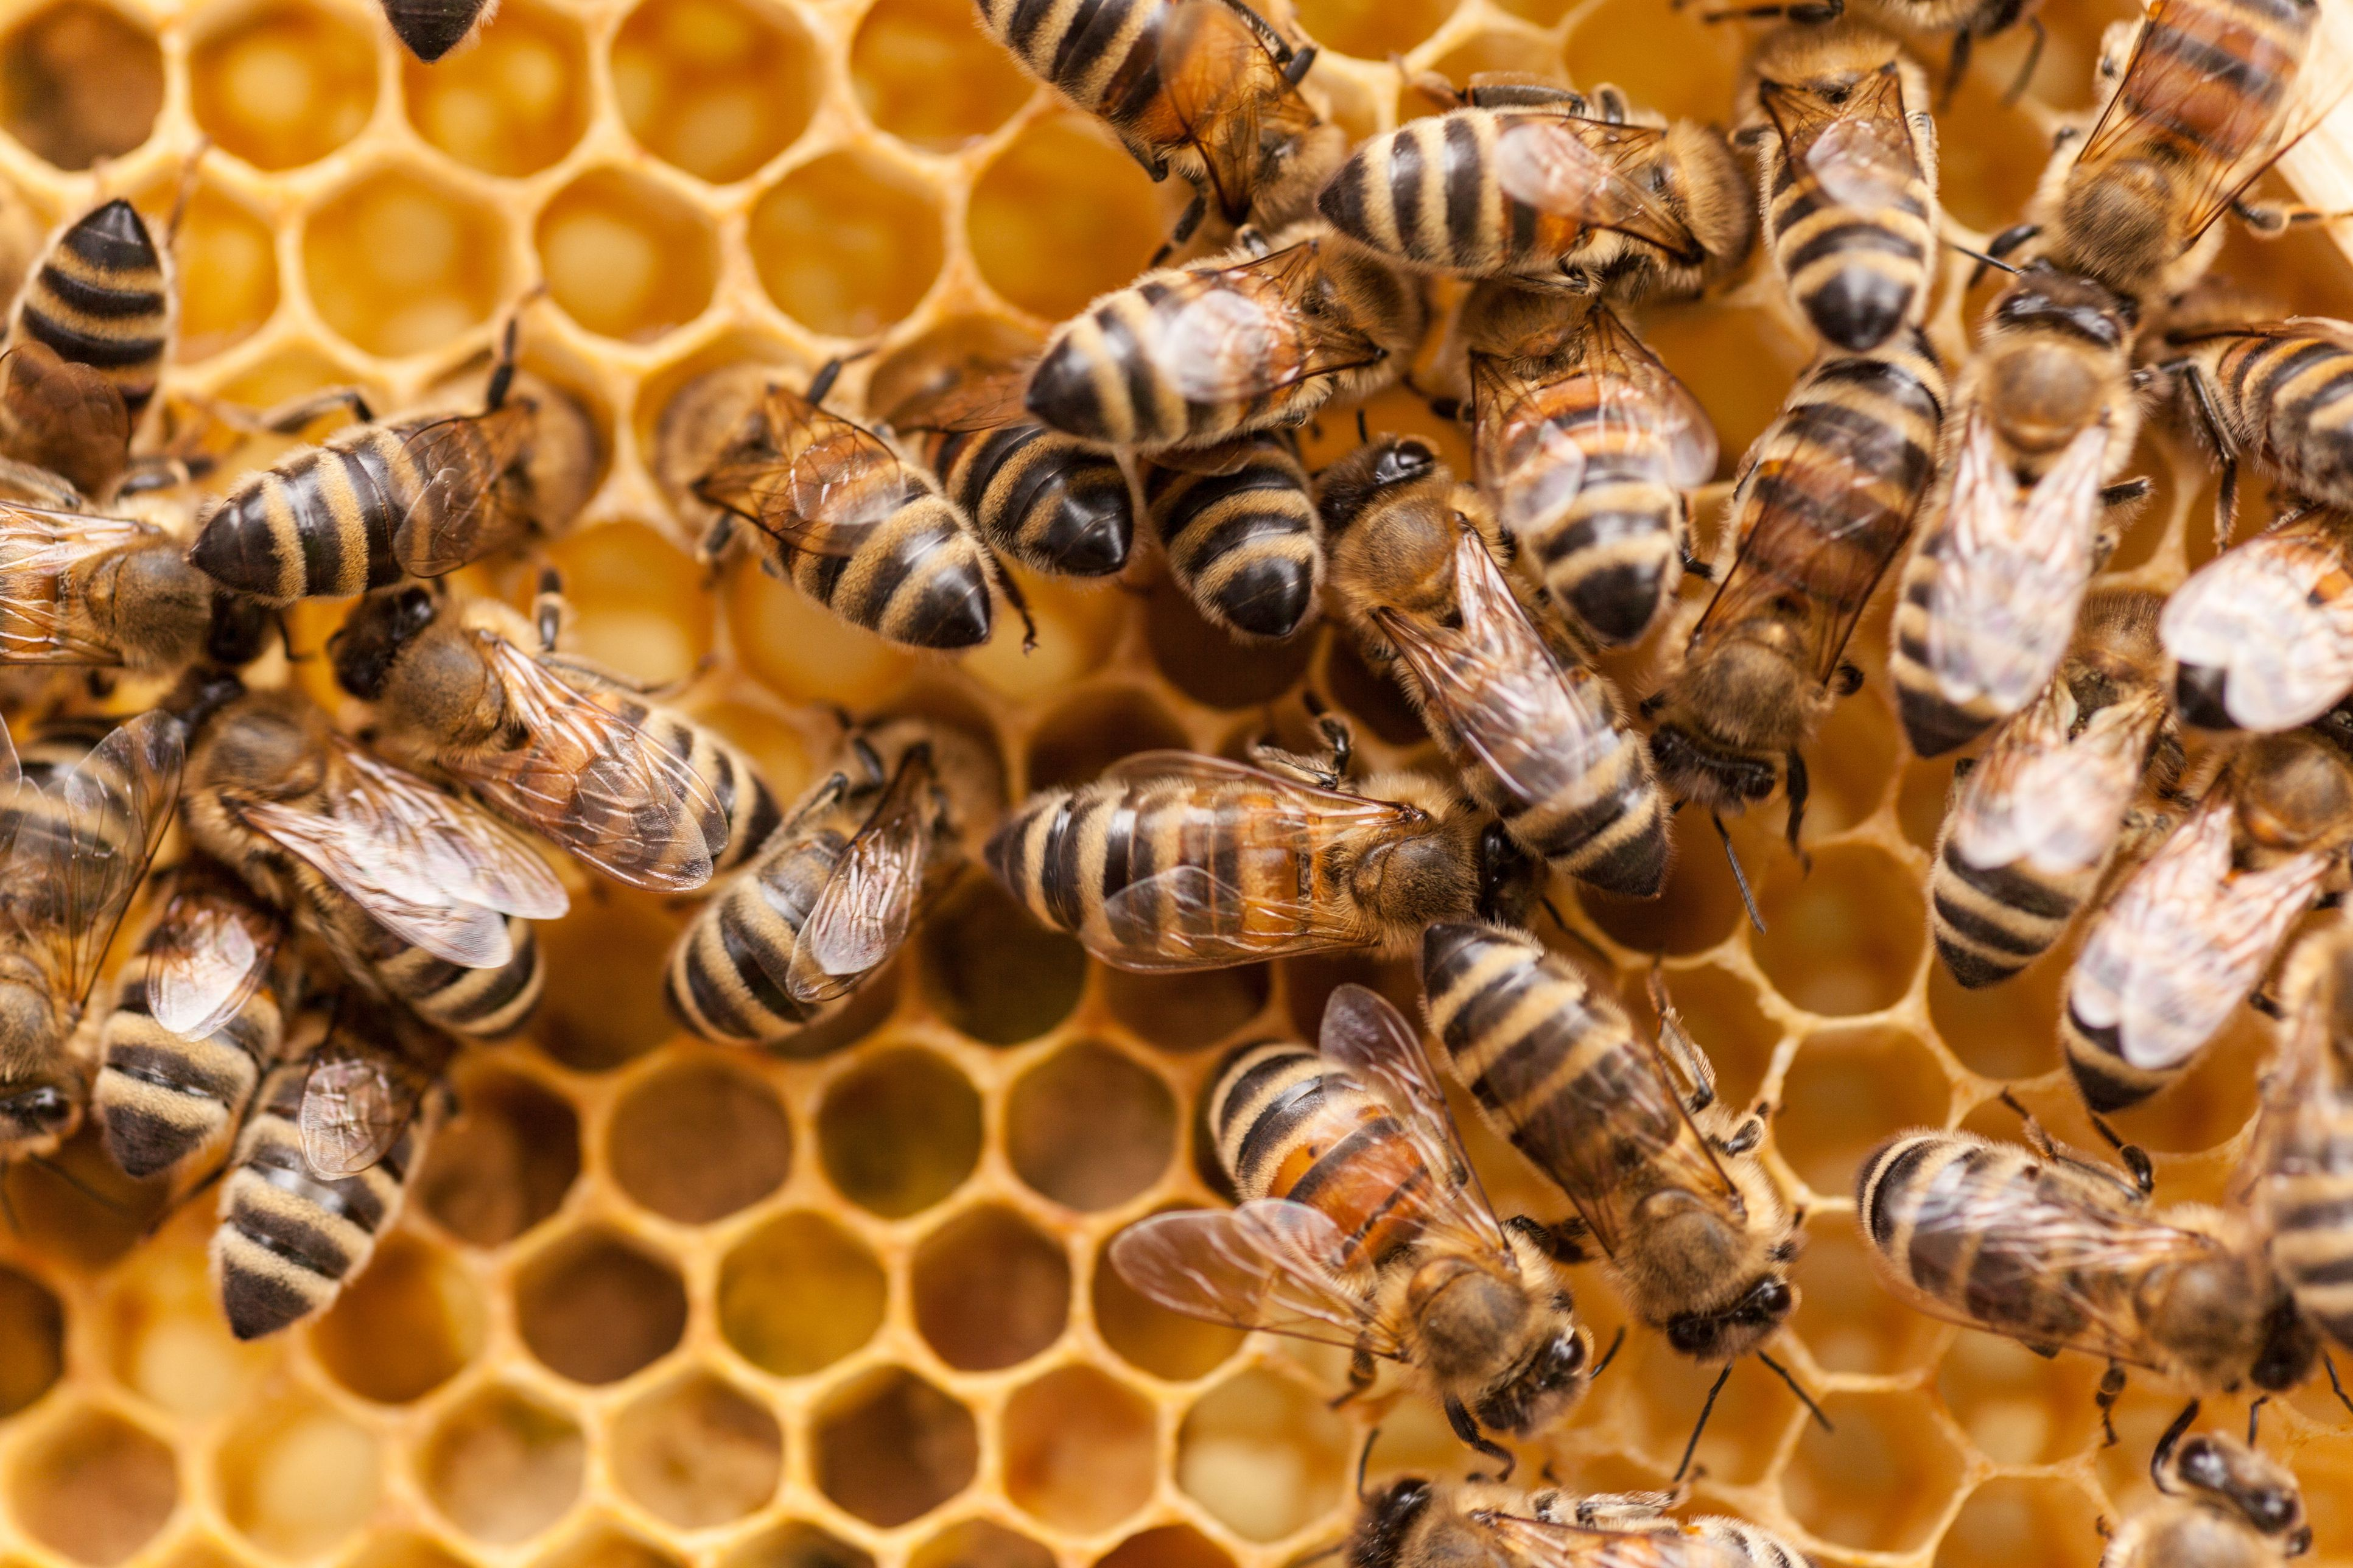 How To Keep Bees A Beginner S Guide To Beekeeping